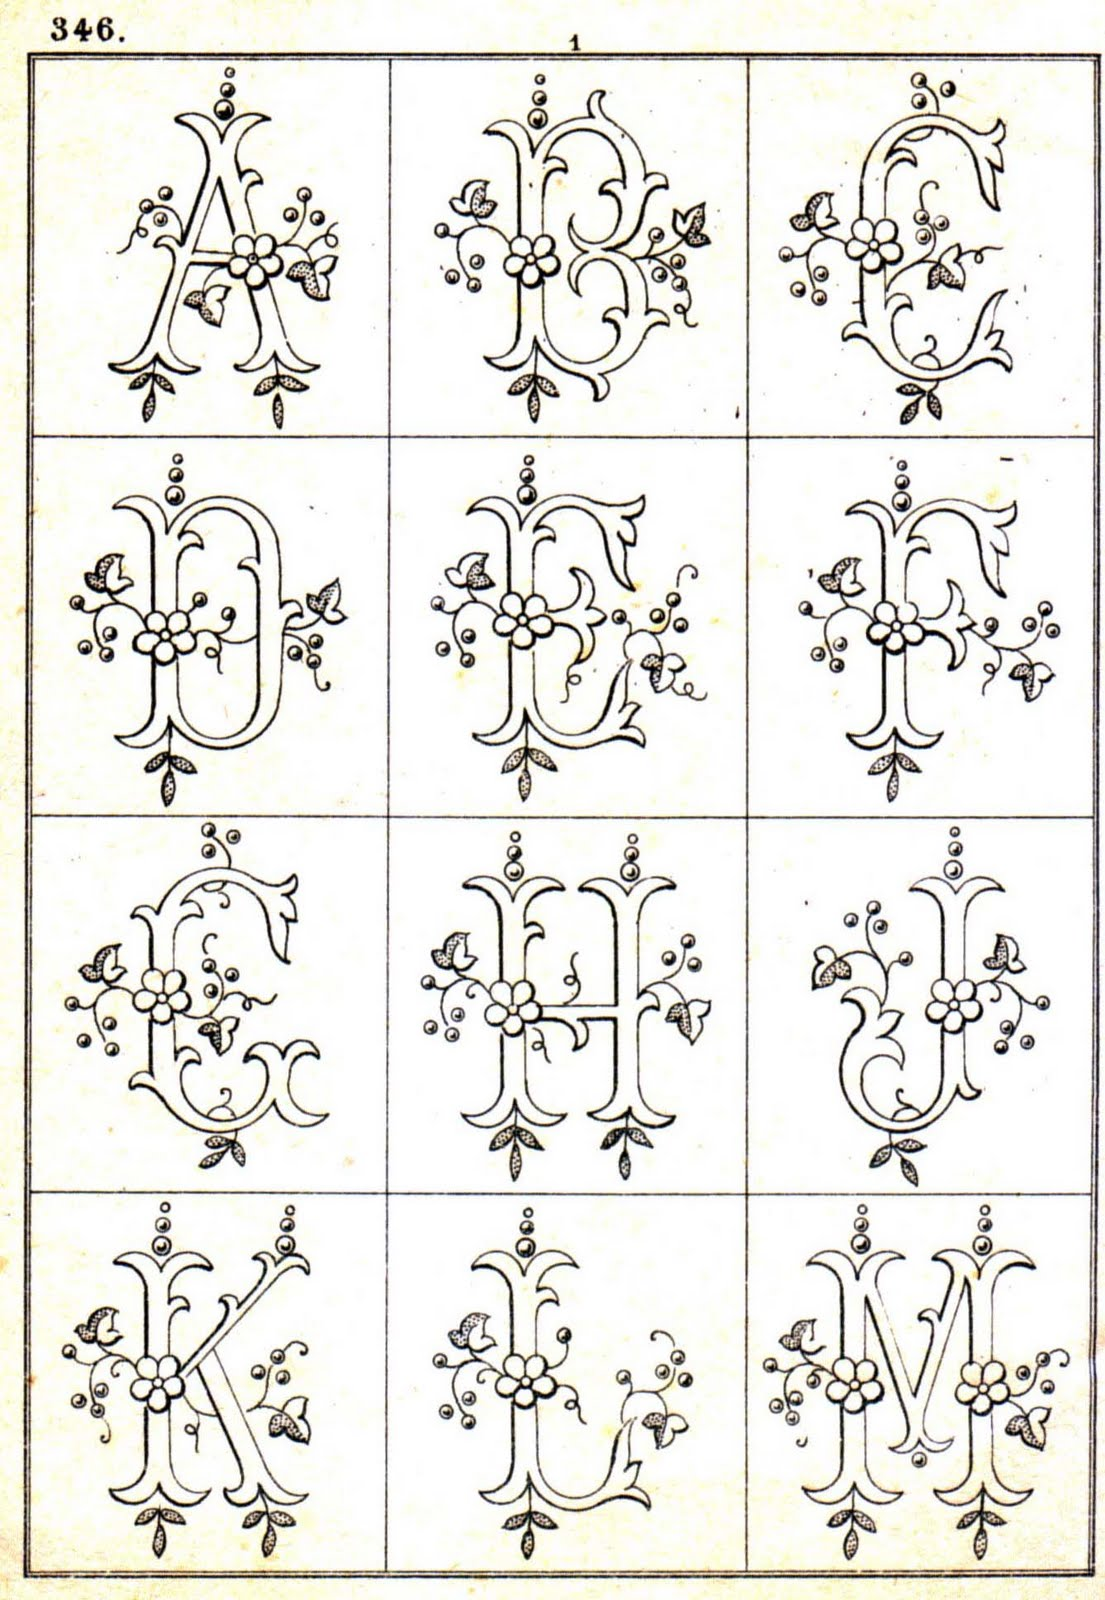 wood burning templates free download - matin lumineux ab c daires anciens